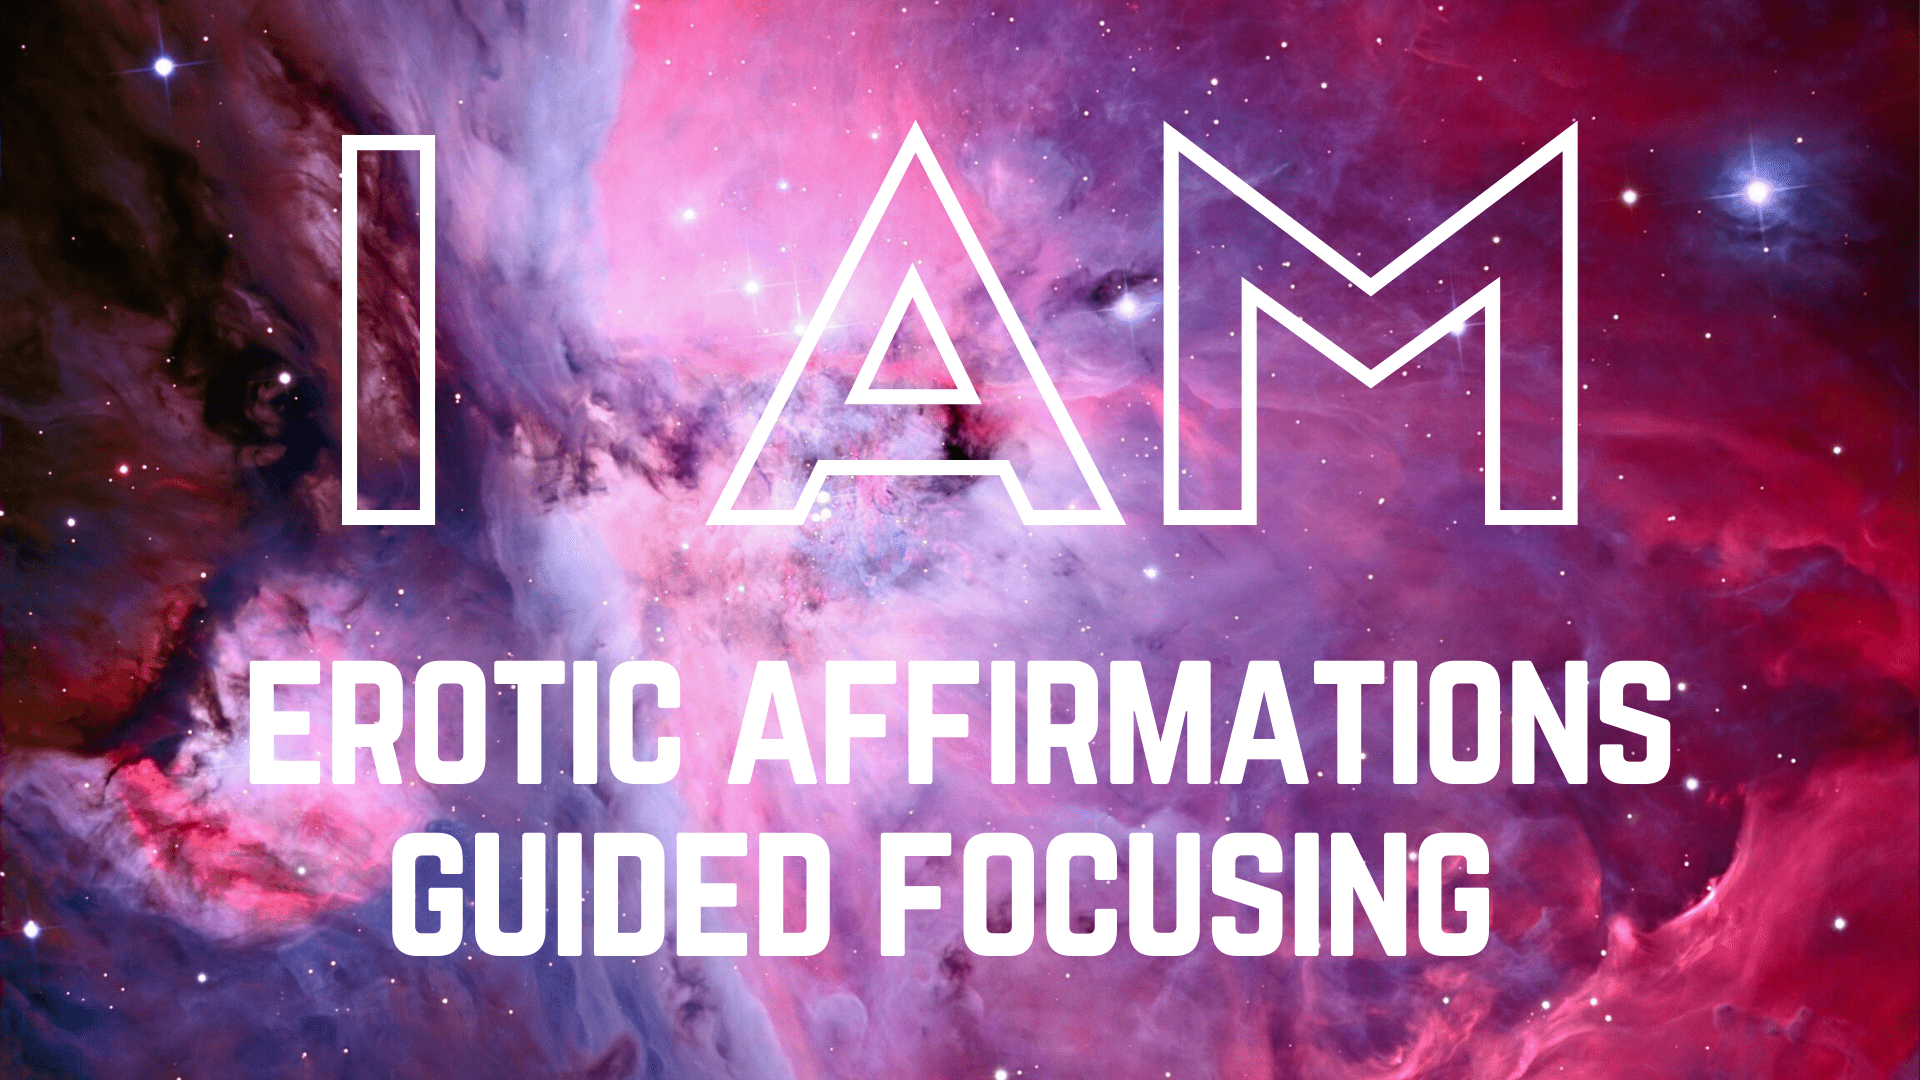 Guided Focusing